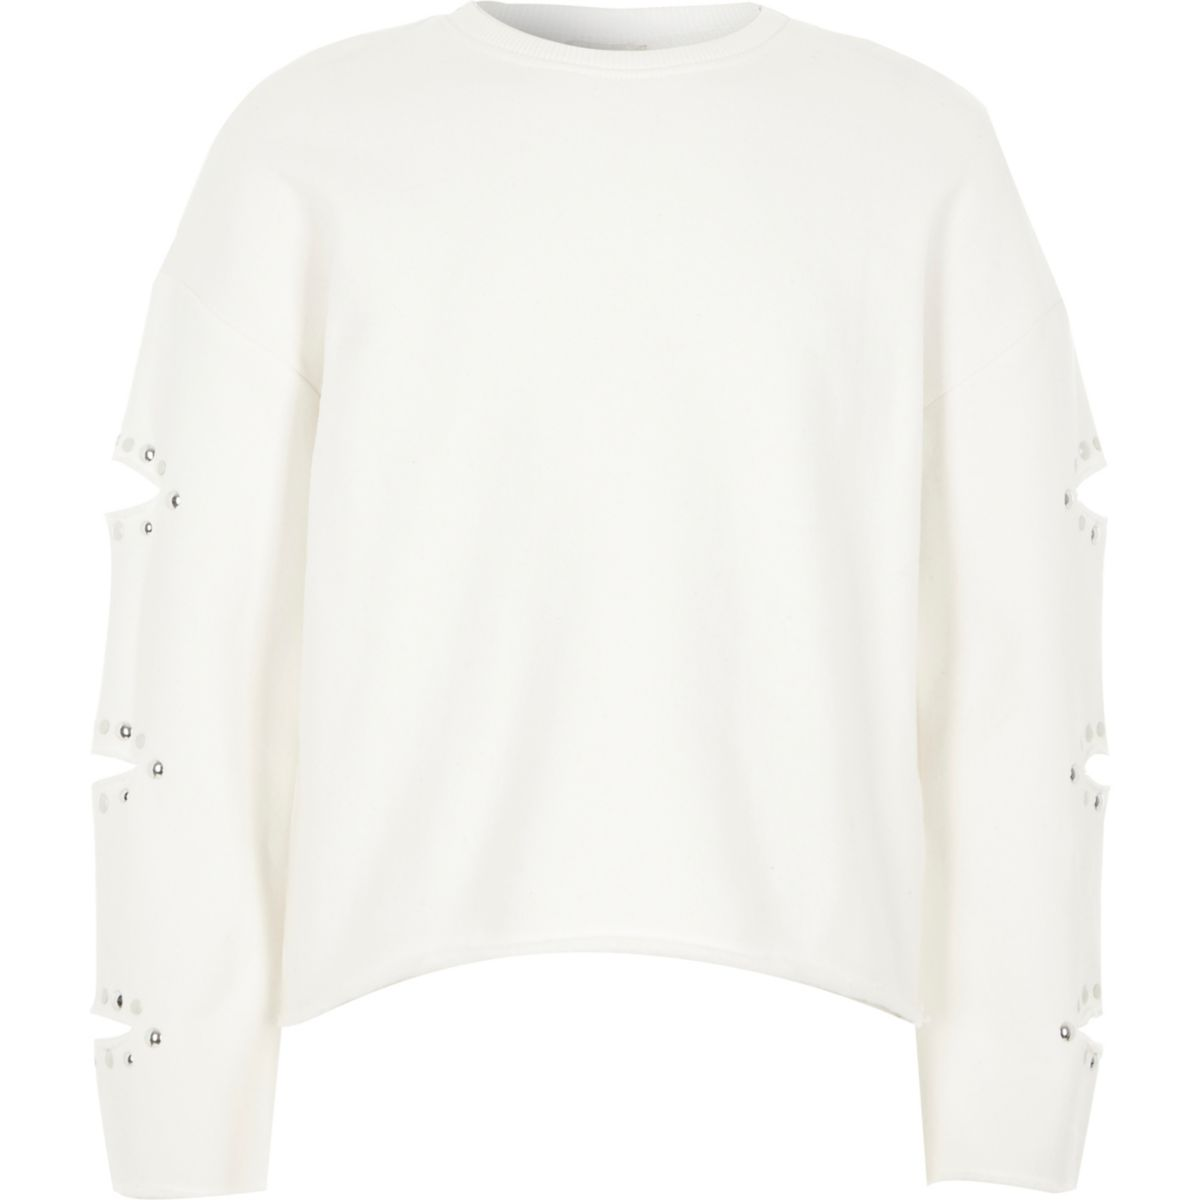 Girls White Split Sleeve Heatseal Sweatshirt by River Island